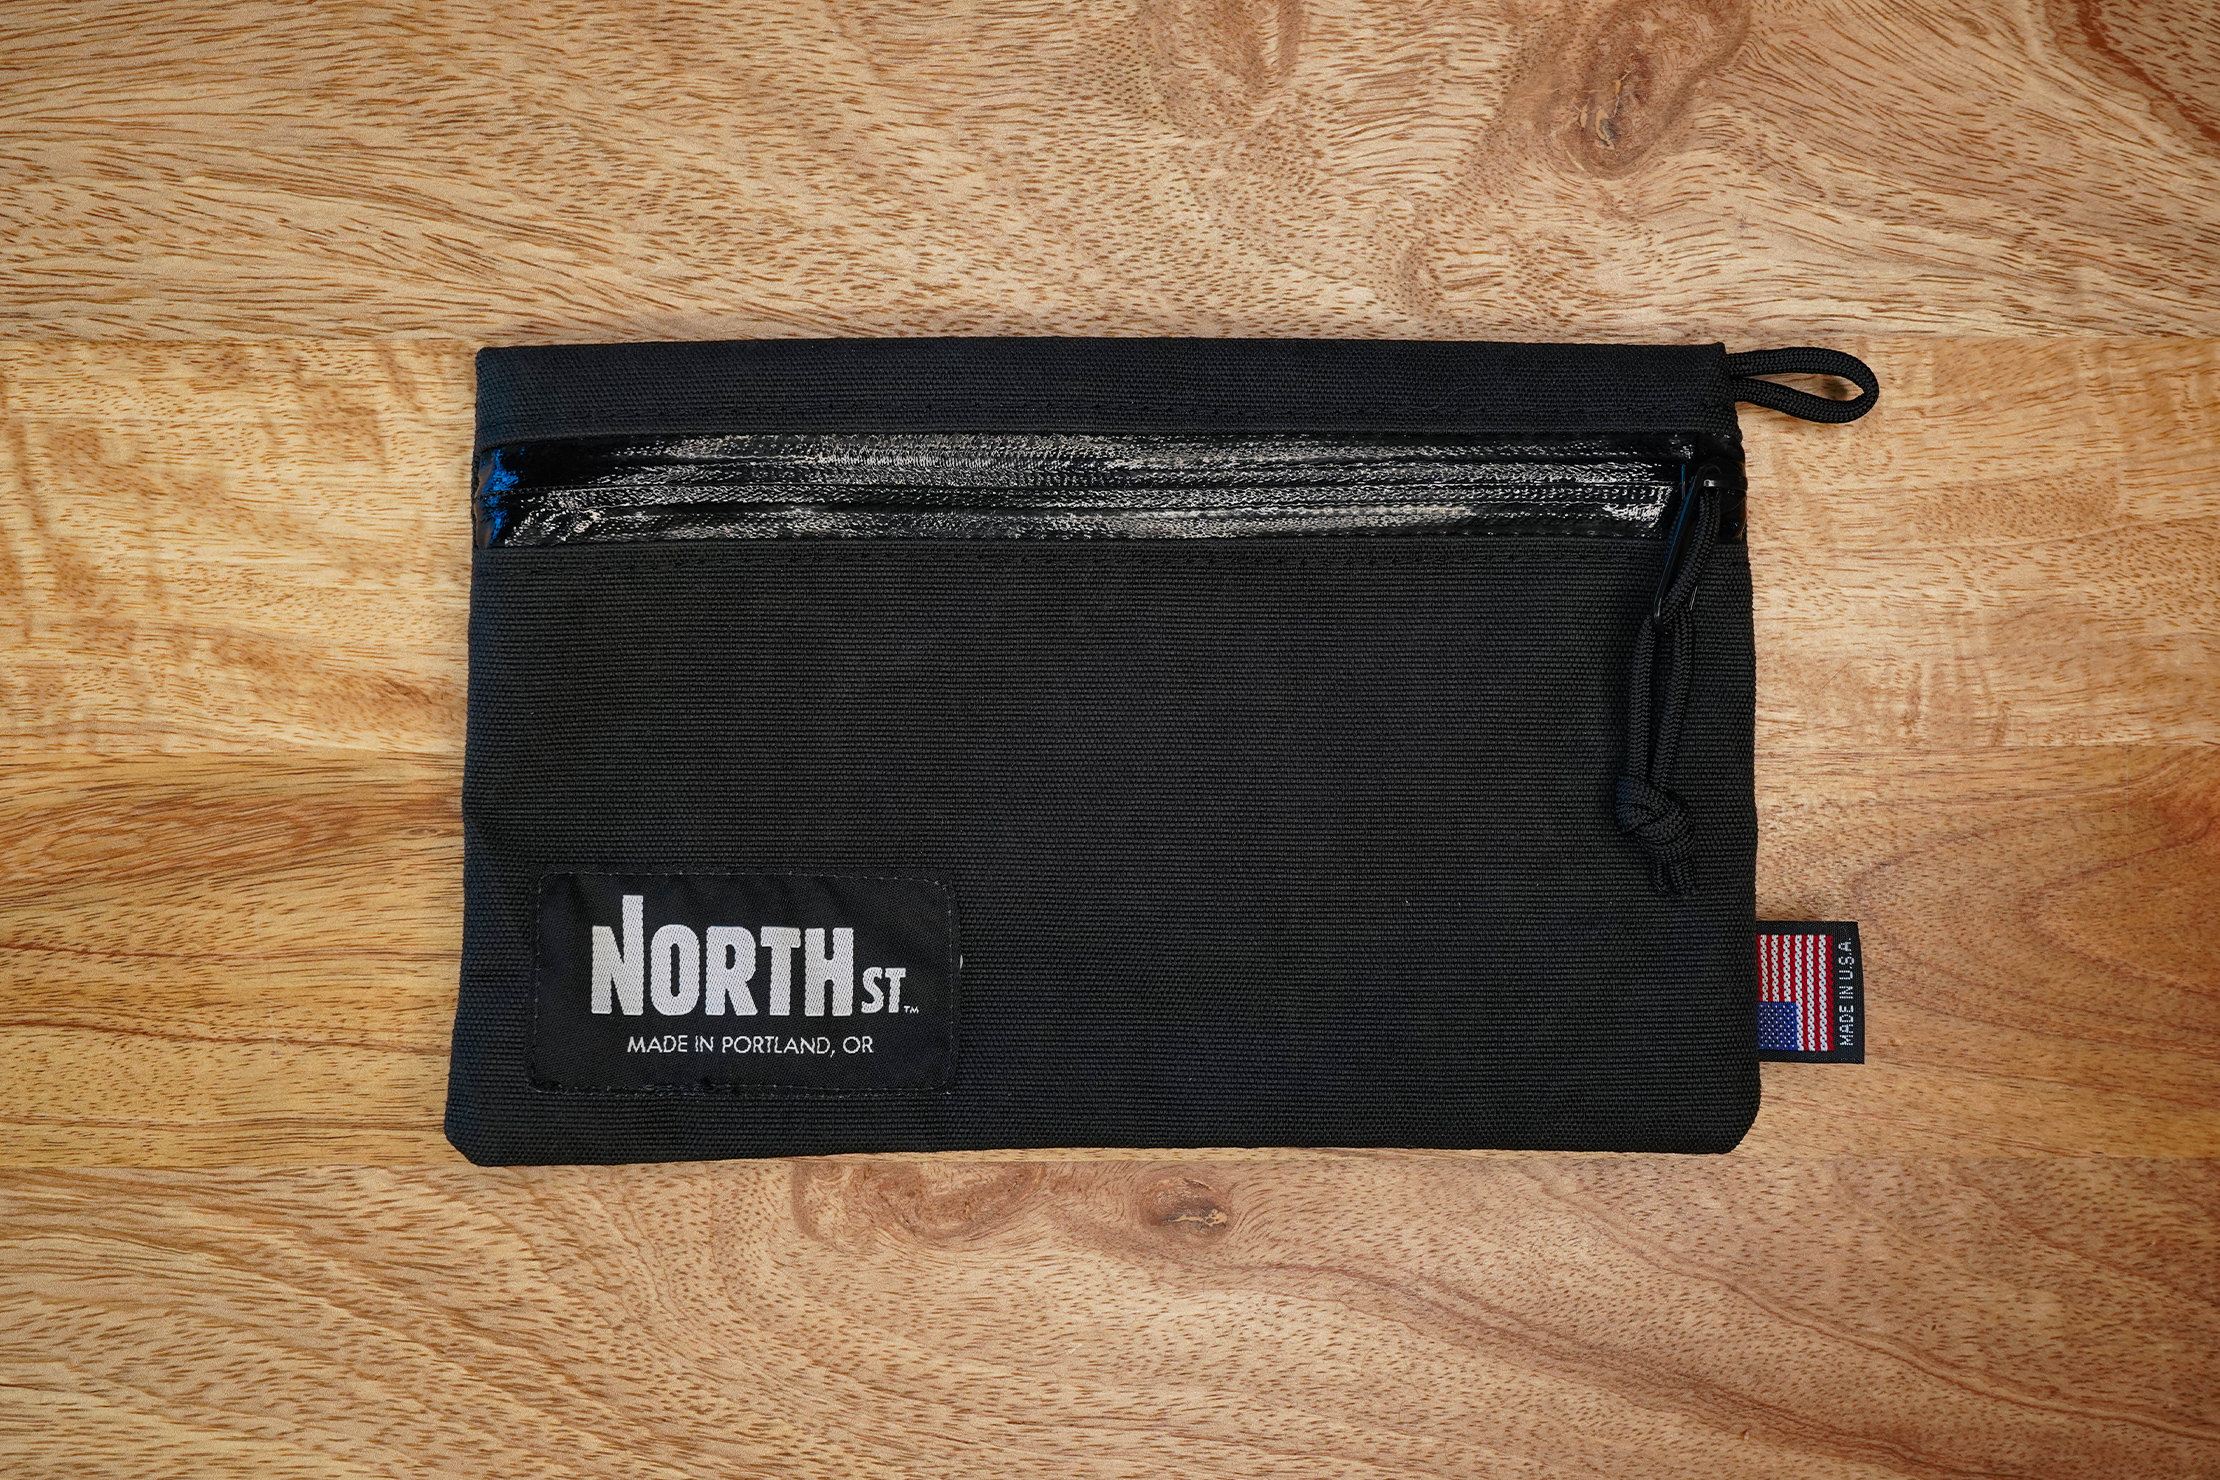 North St. Bags Pittock Travel Pouch On A Desk